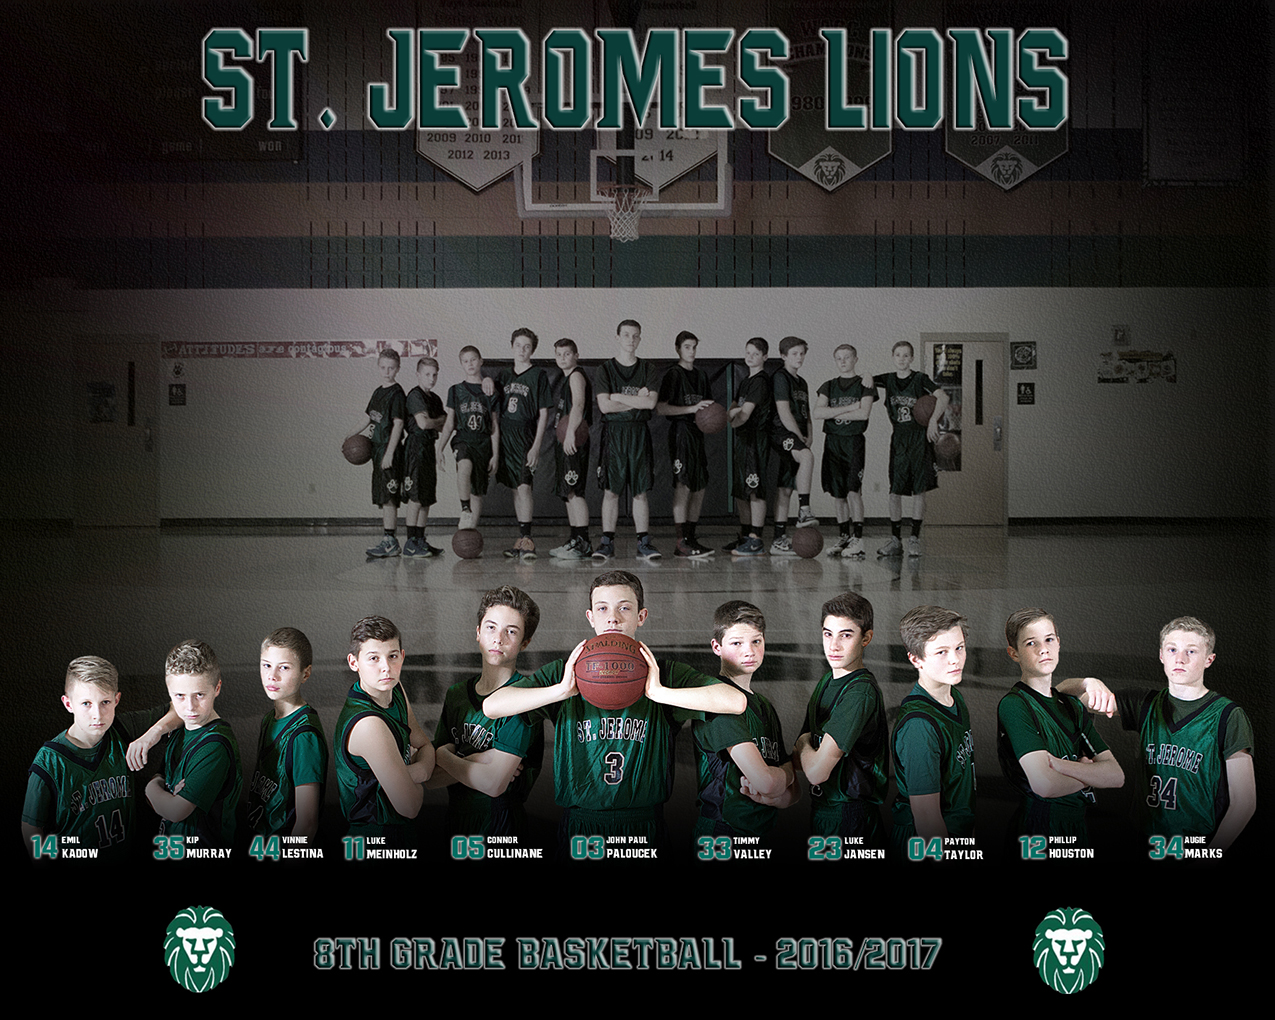 The 2017 St. Jerome Lions